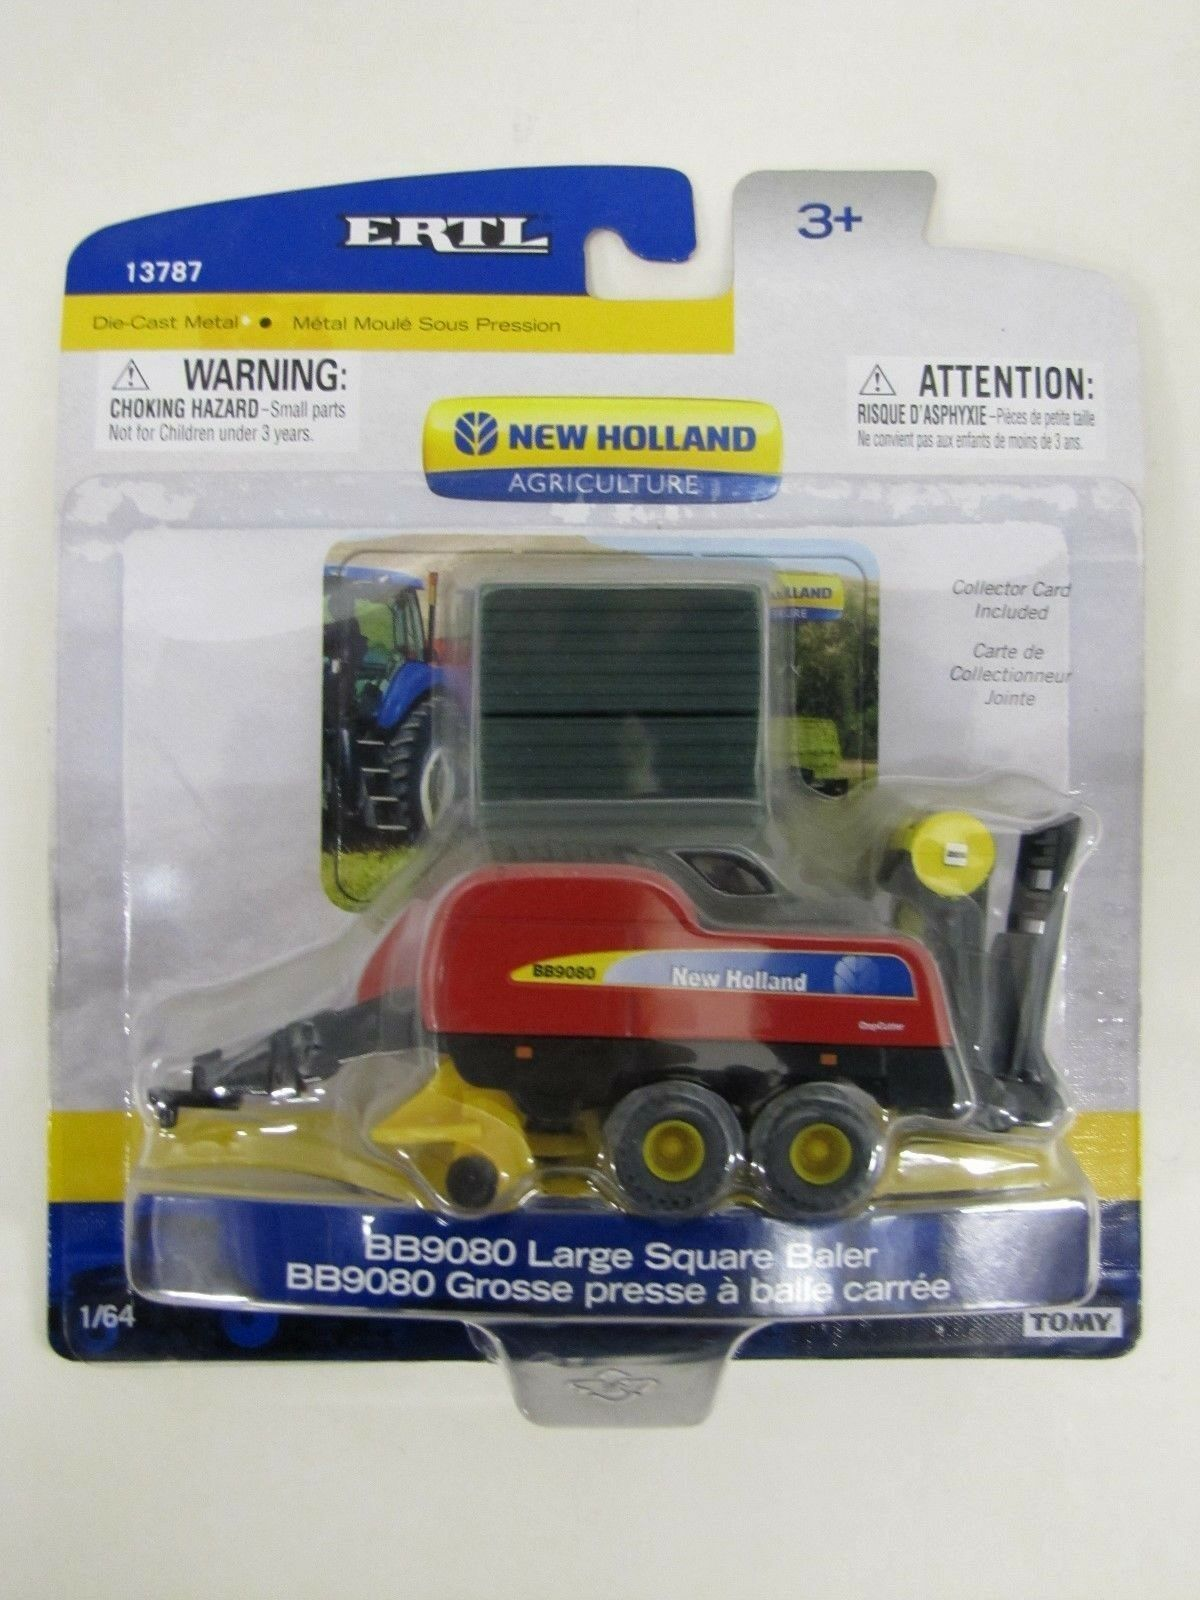 New Holland BB9080 Large Square Baler & 2 Square Bales1 64 Scale Toy